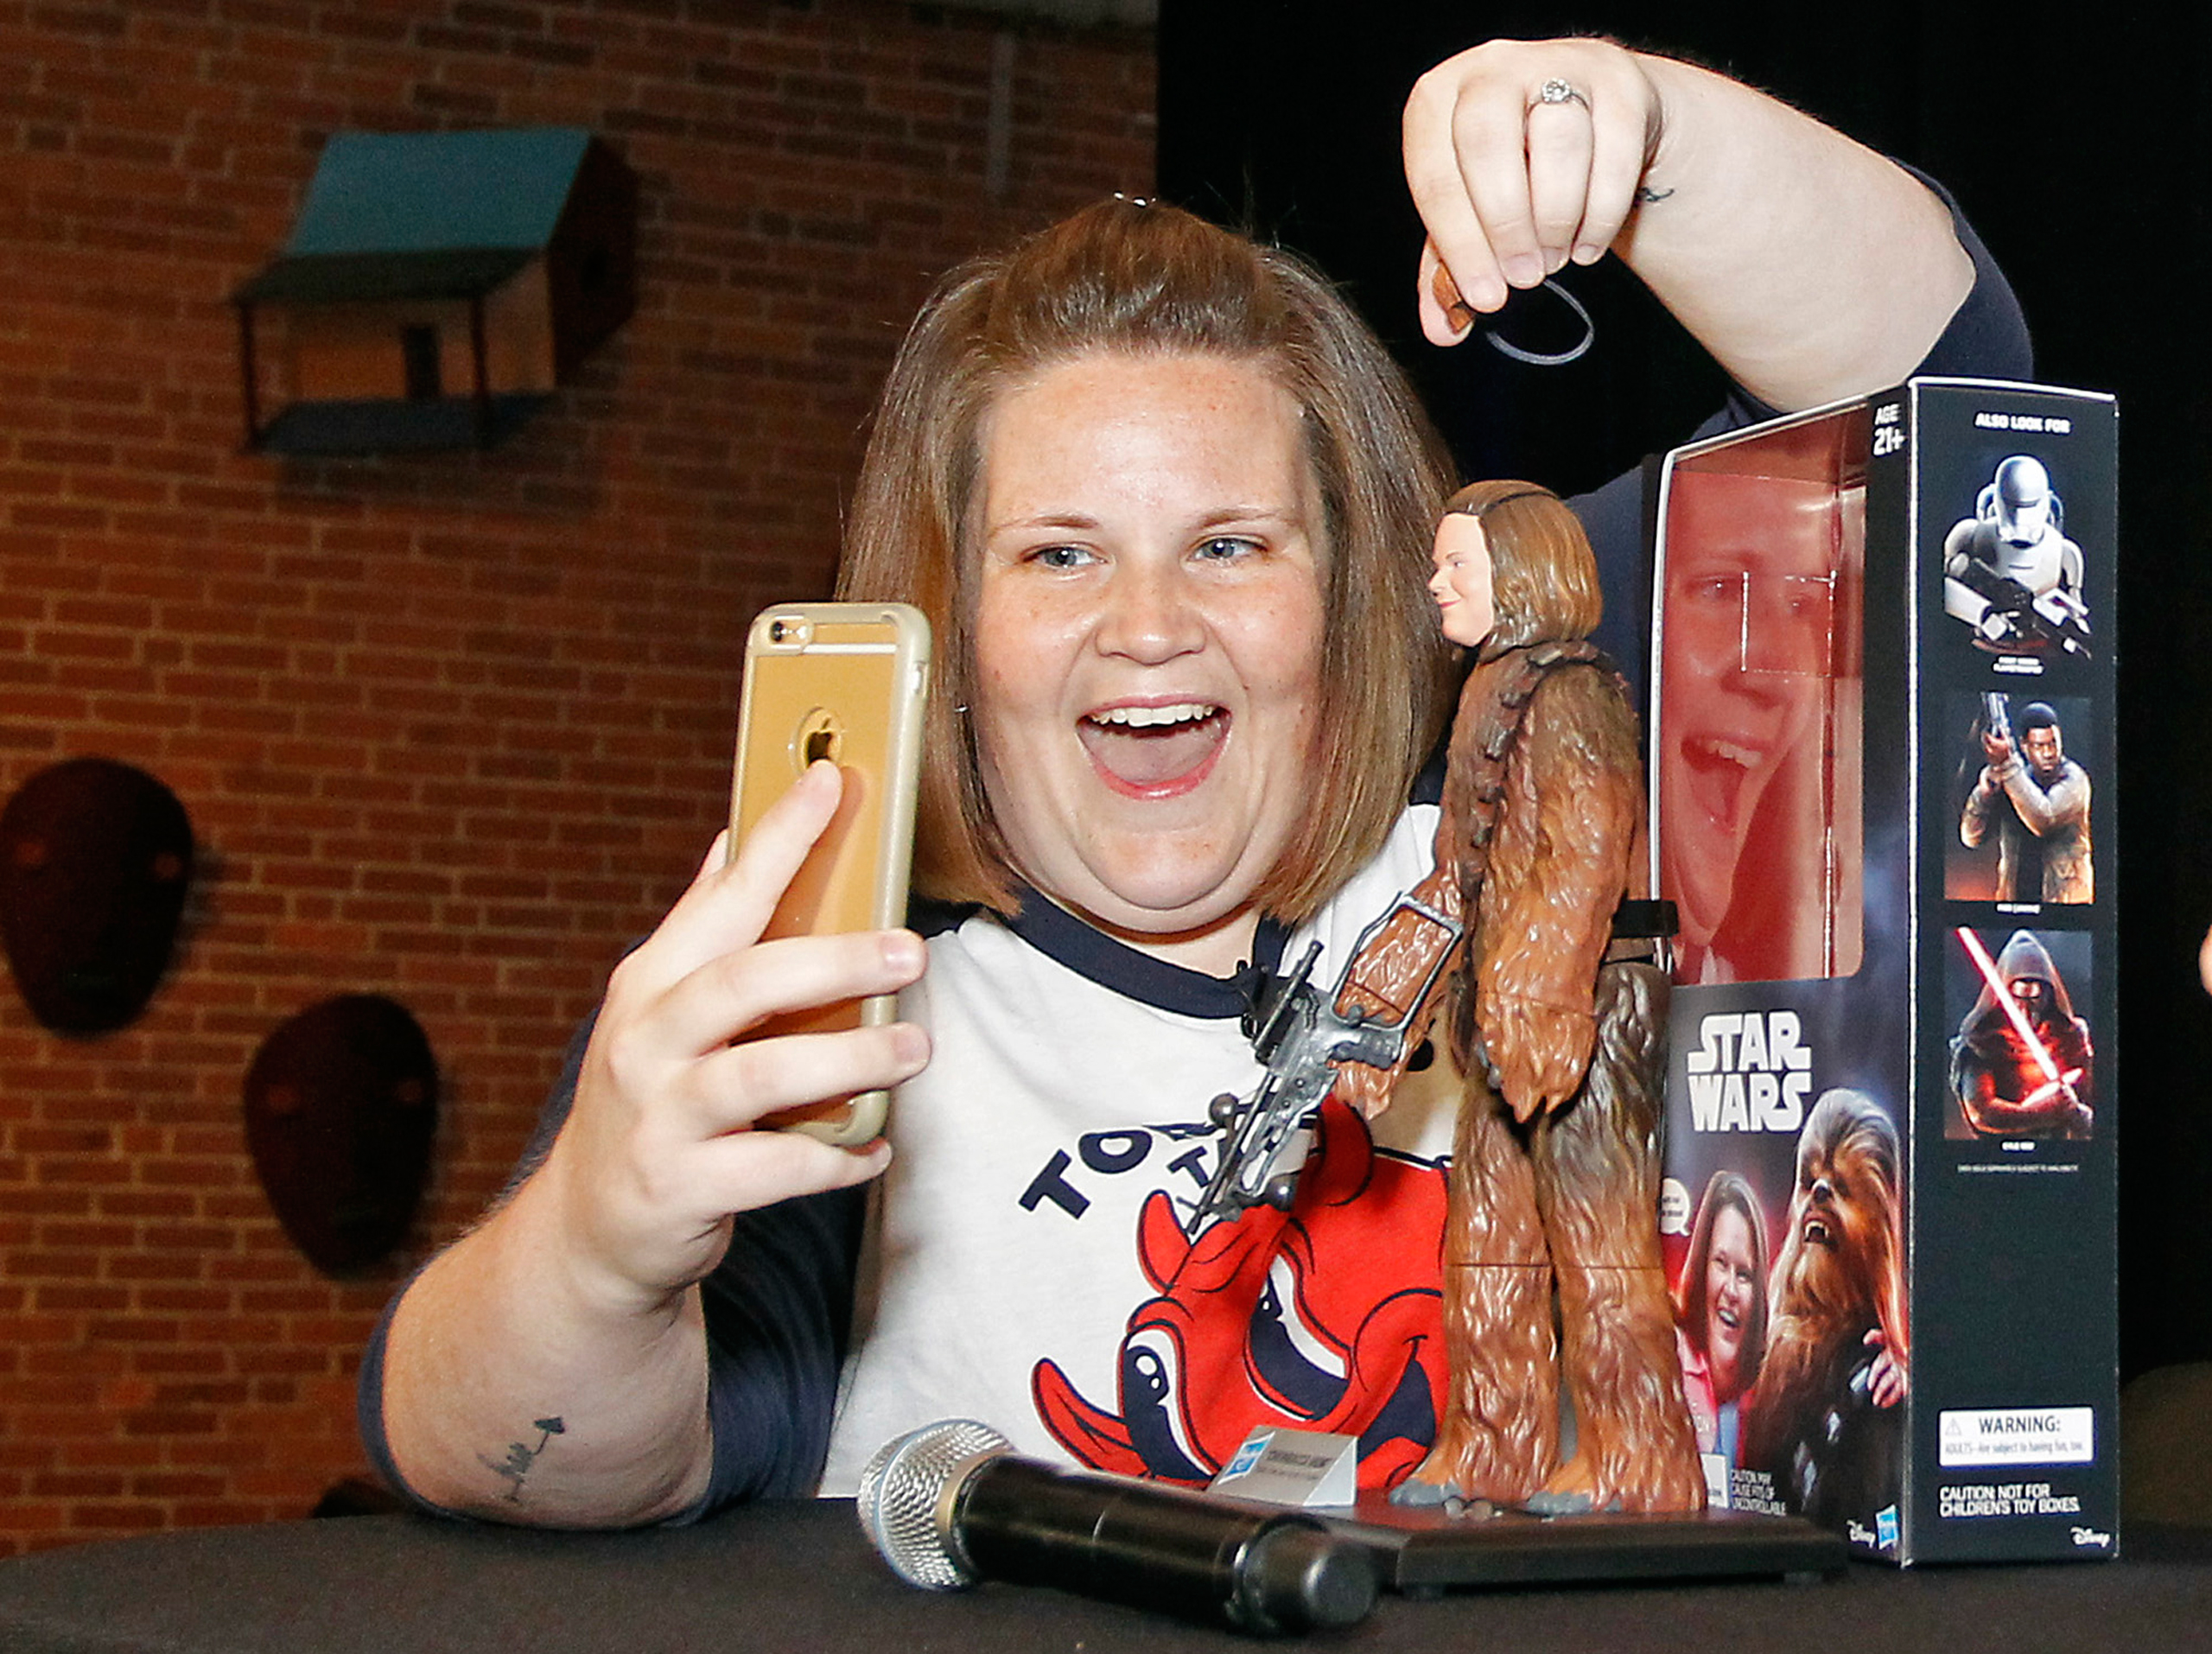 Candace Payne, also known as Chewbacca Mom, streams a Facebook Live video with her custom Chewbacca Mom action figure during a meet and greet at Hasbro HQ in Pawtucket, R.I., on June 17, 2016.